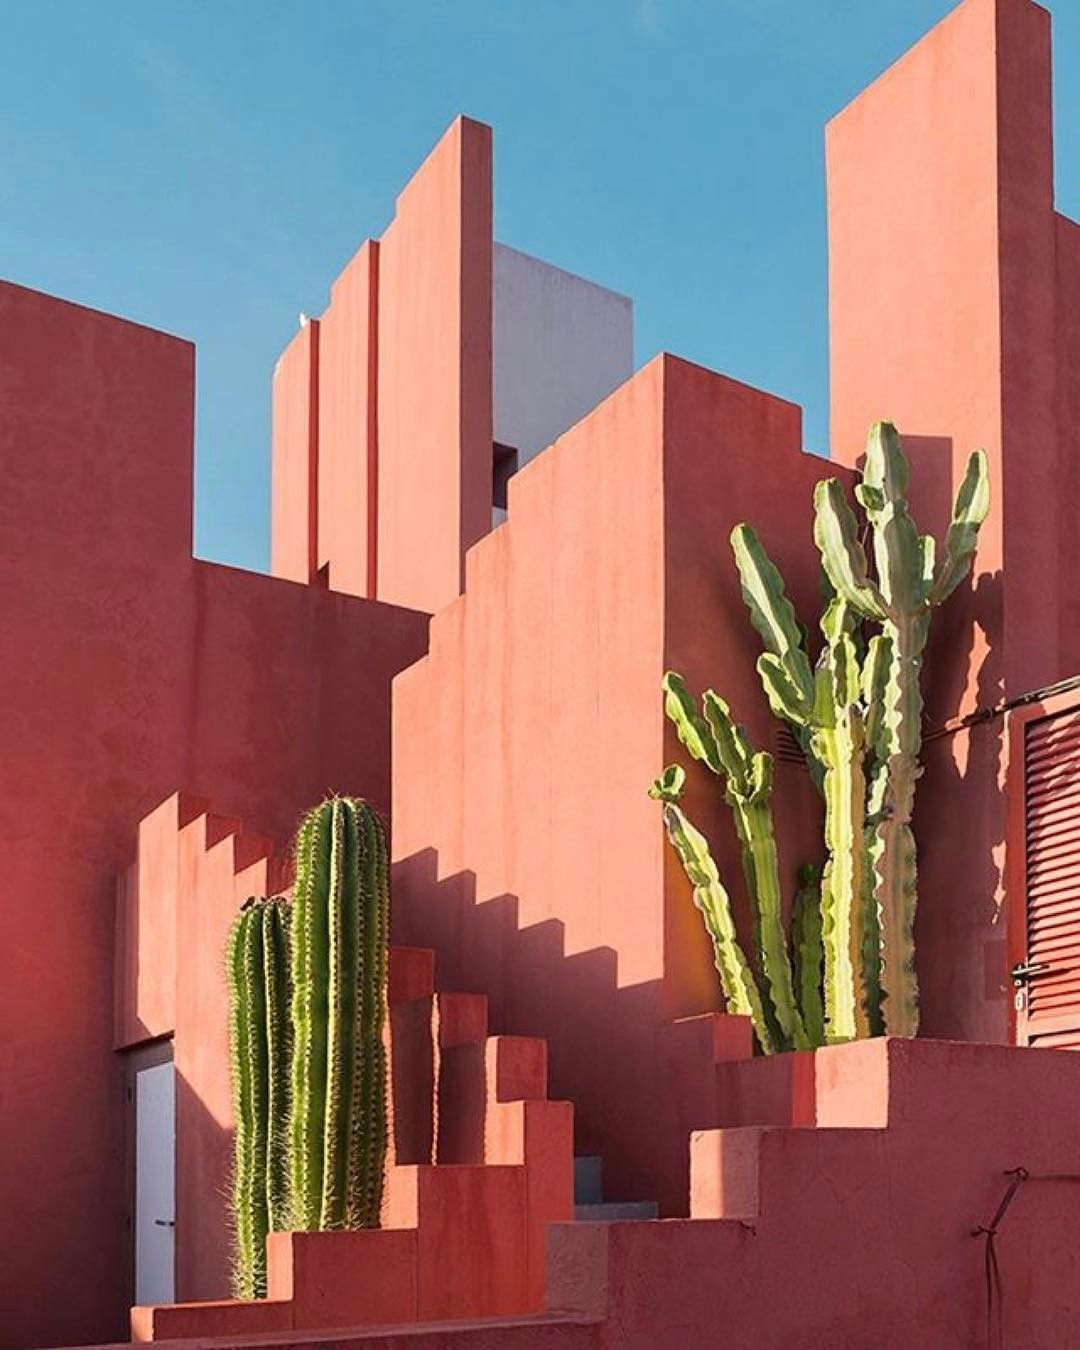 Inspiring Colour And Shape. Thanks For The Image